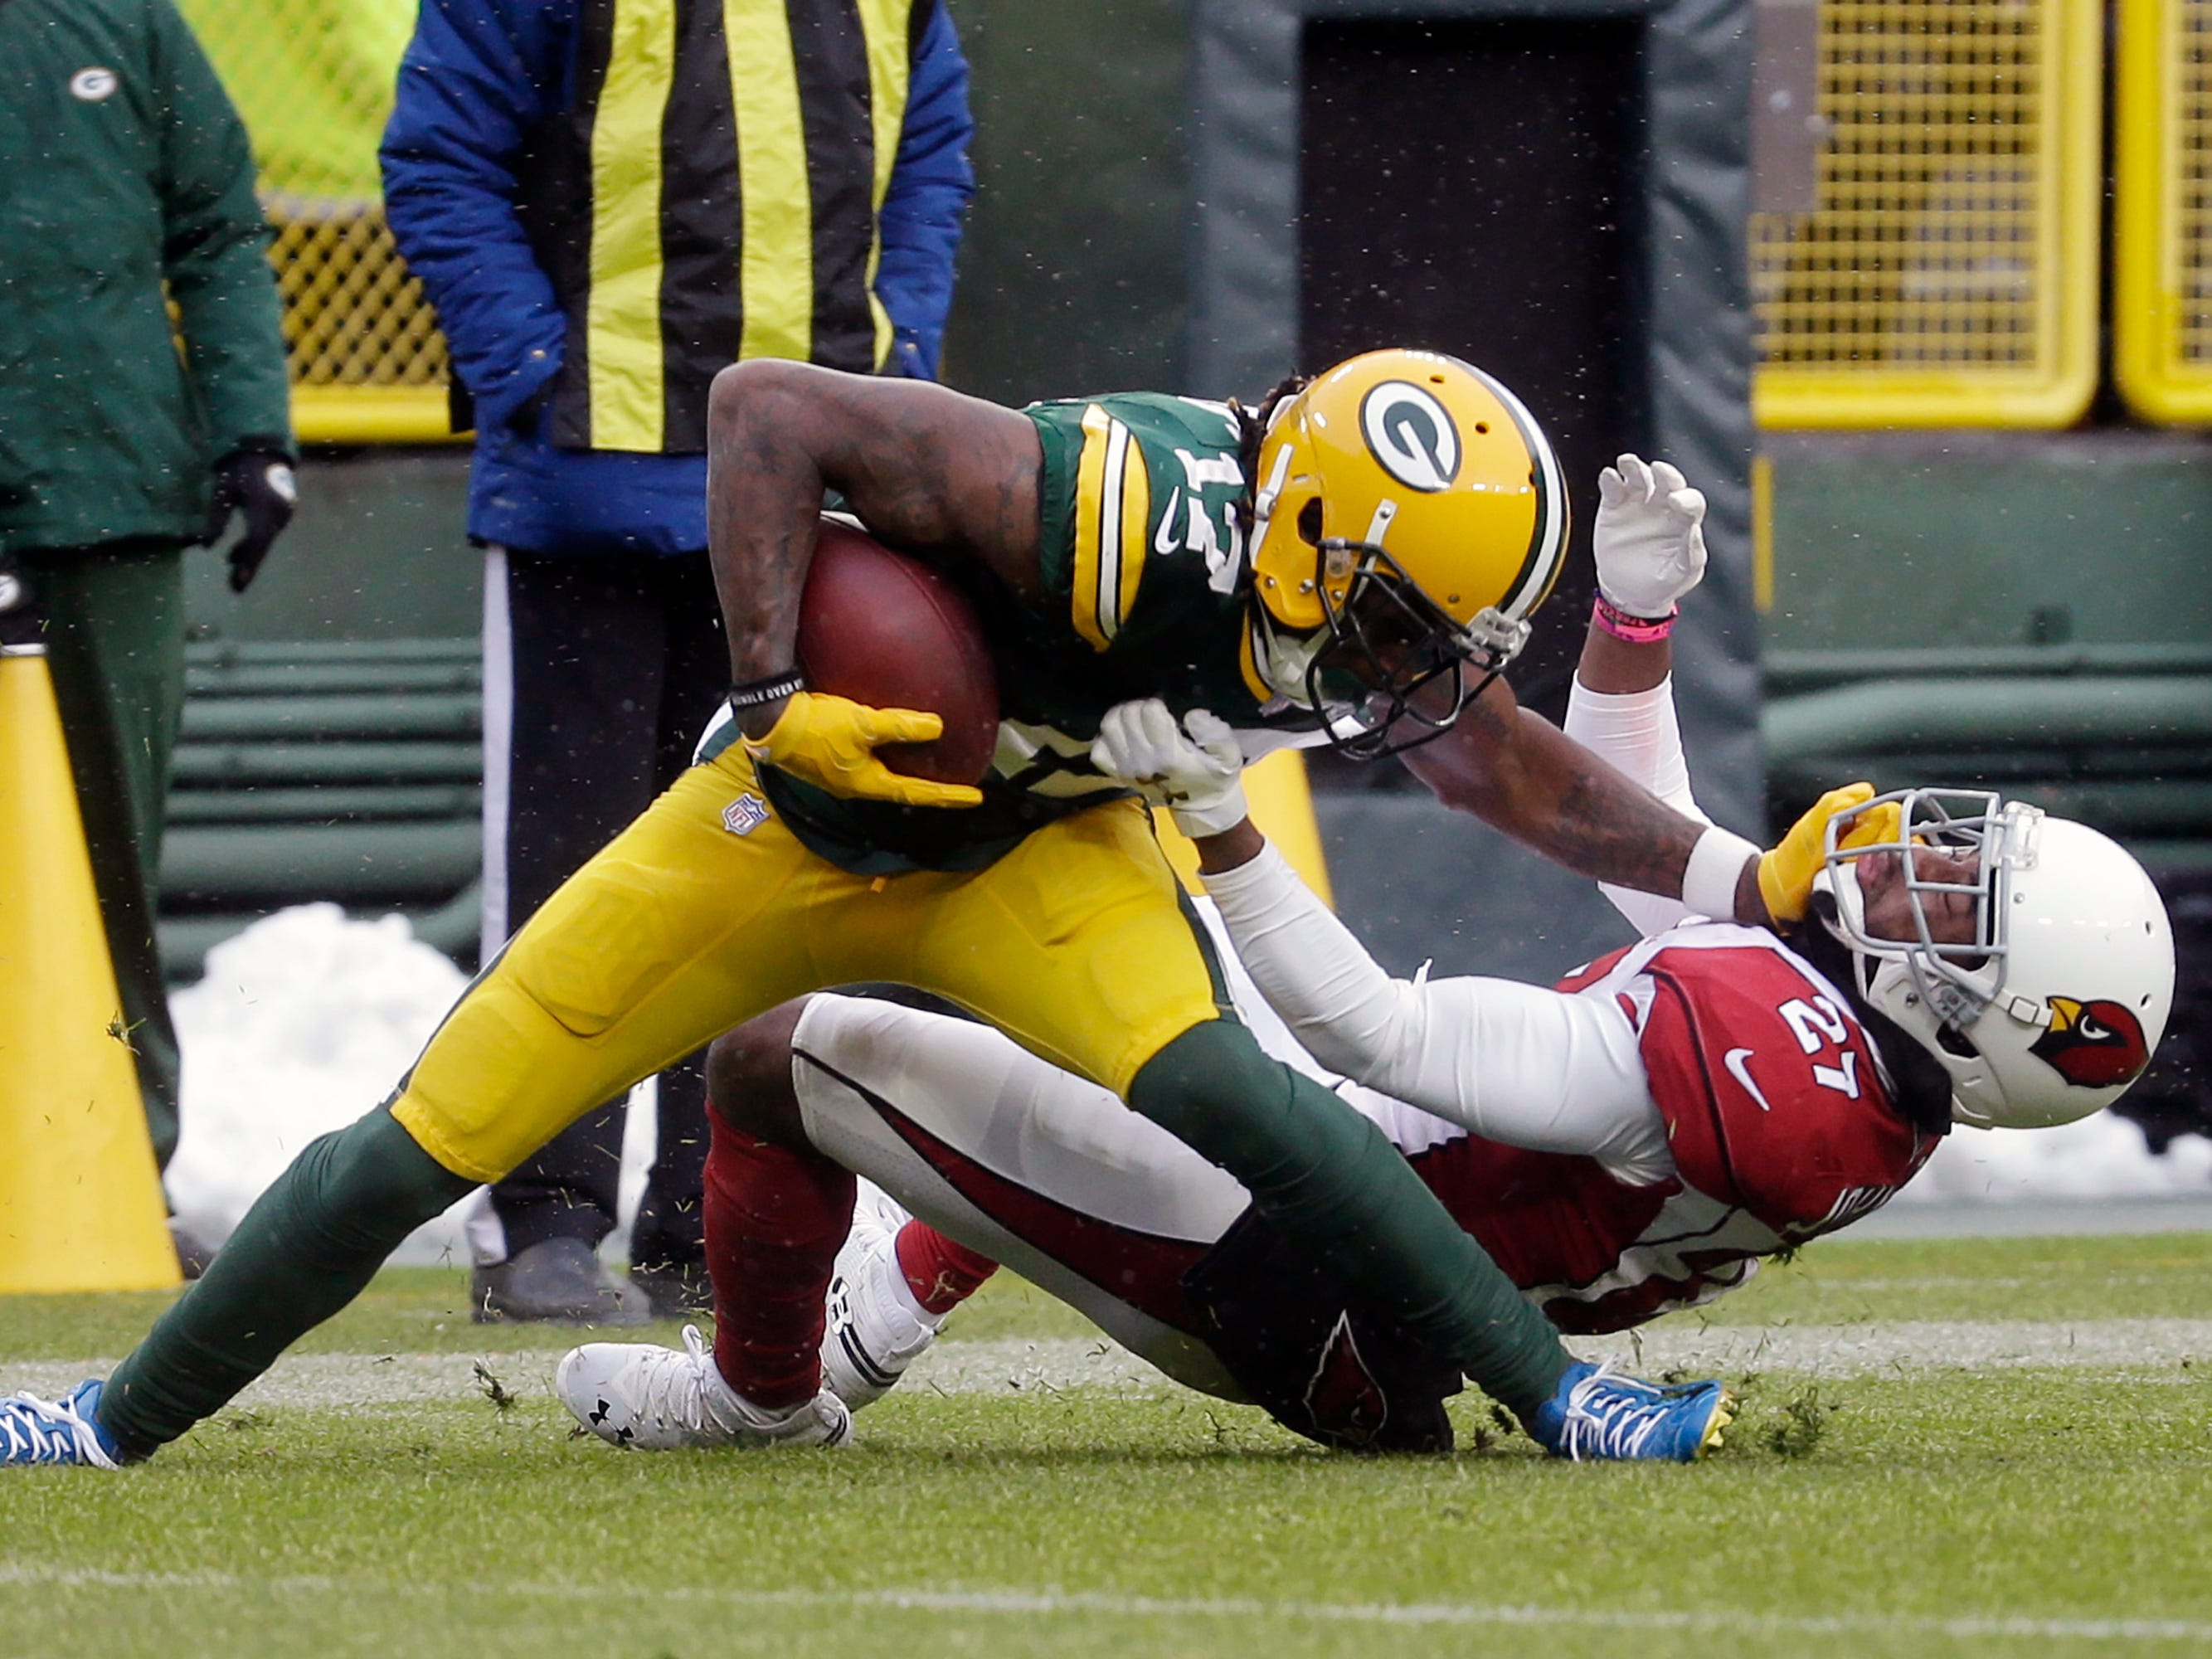 Green Bay Packers wide receiver Davante Adams, left, is hit by Arizona Cardinals defensive back Leonard Johnson, right,  after making a catch during the first half of an NFL football game Sunday, Dec. 2, 2018, in Green Bay, Wis. (AP Photo/Mike Roemer)